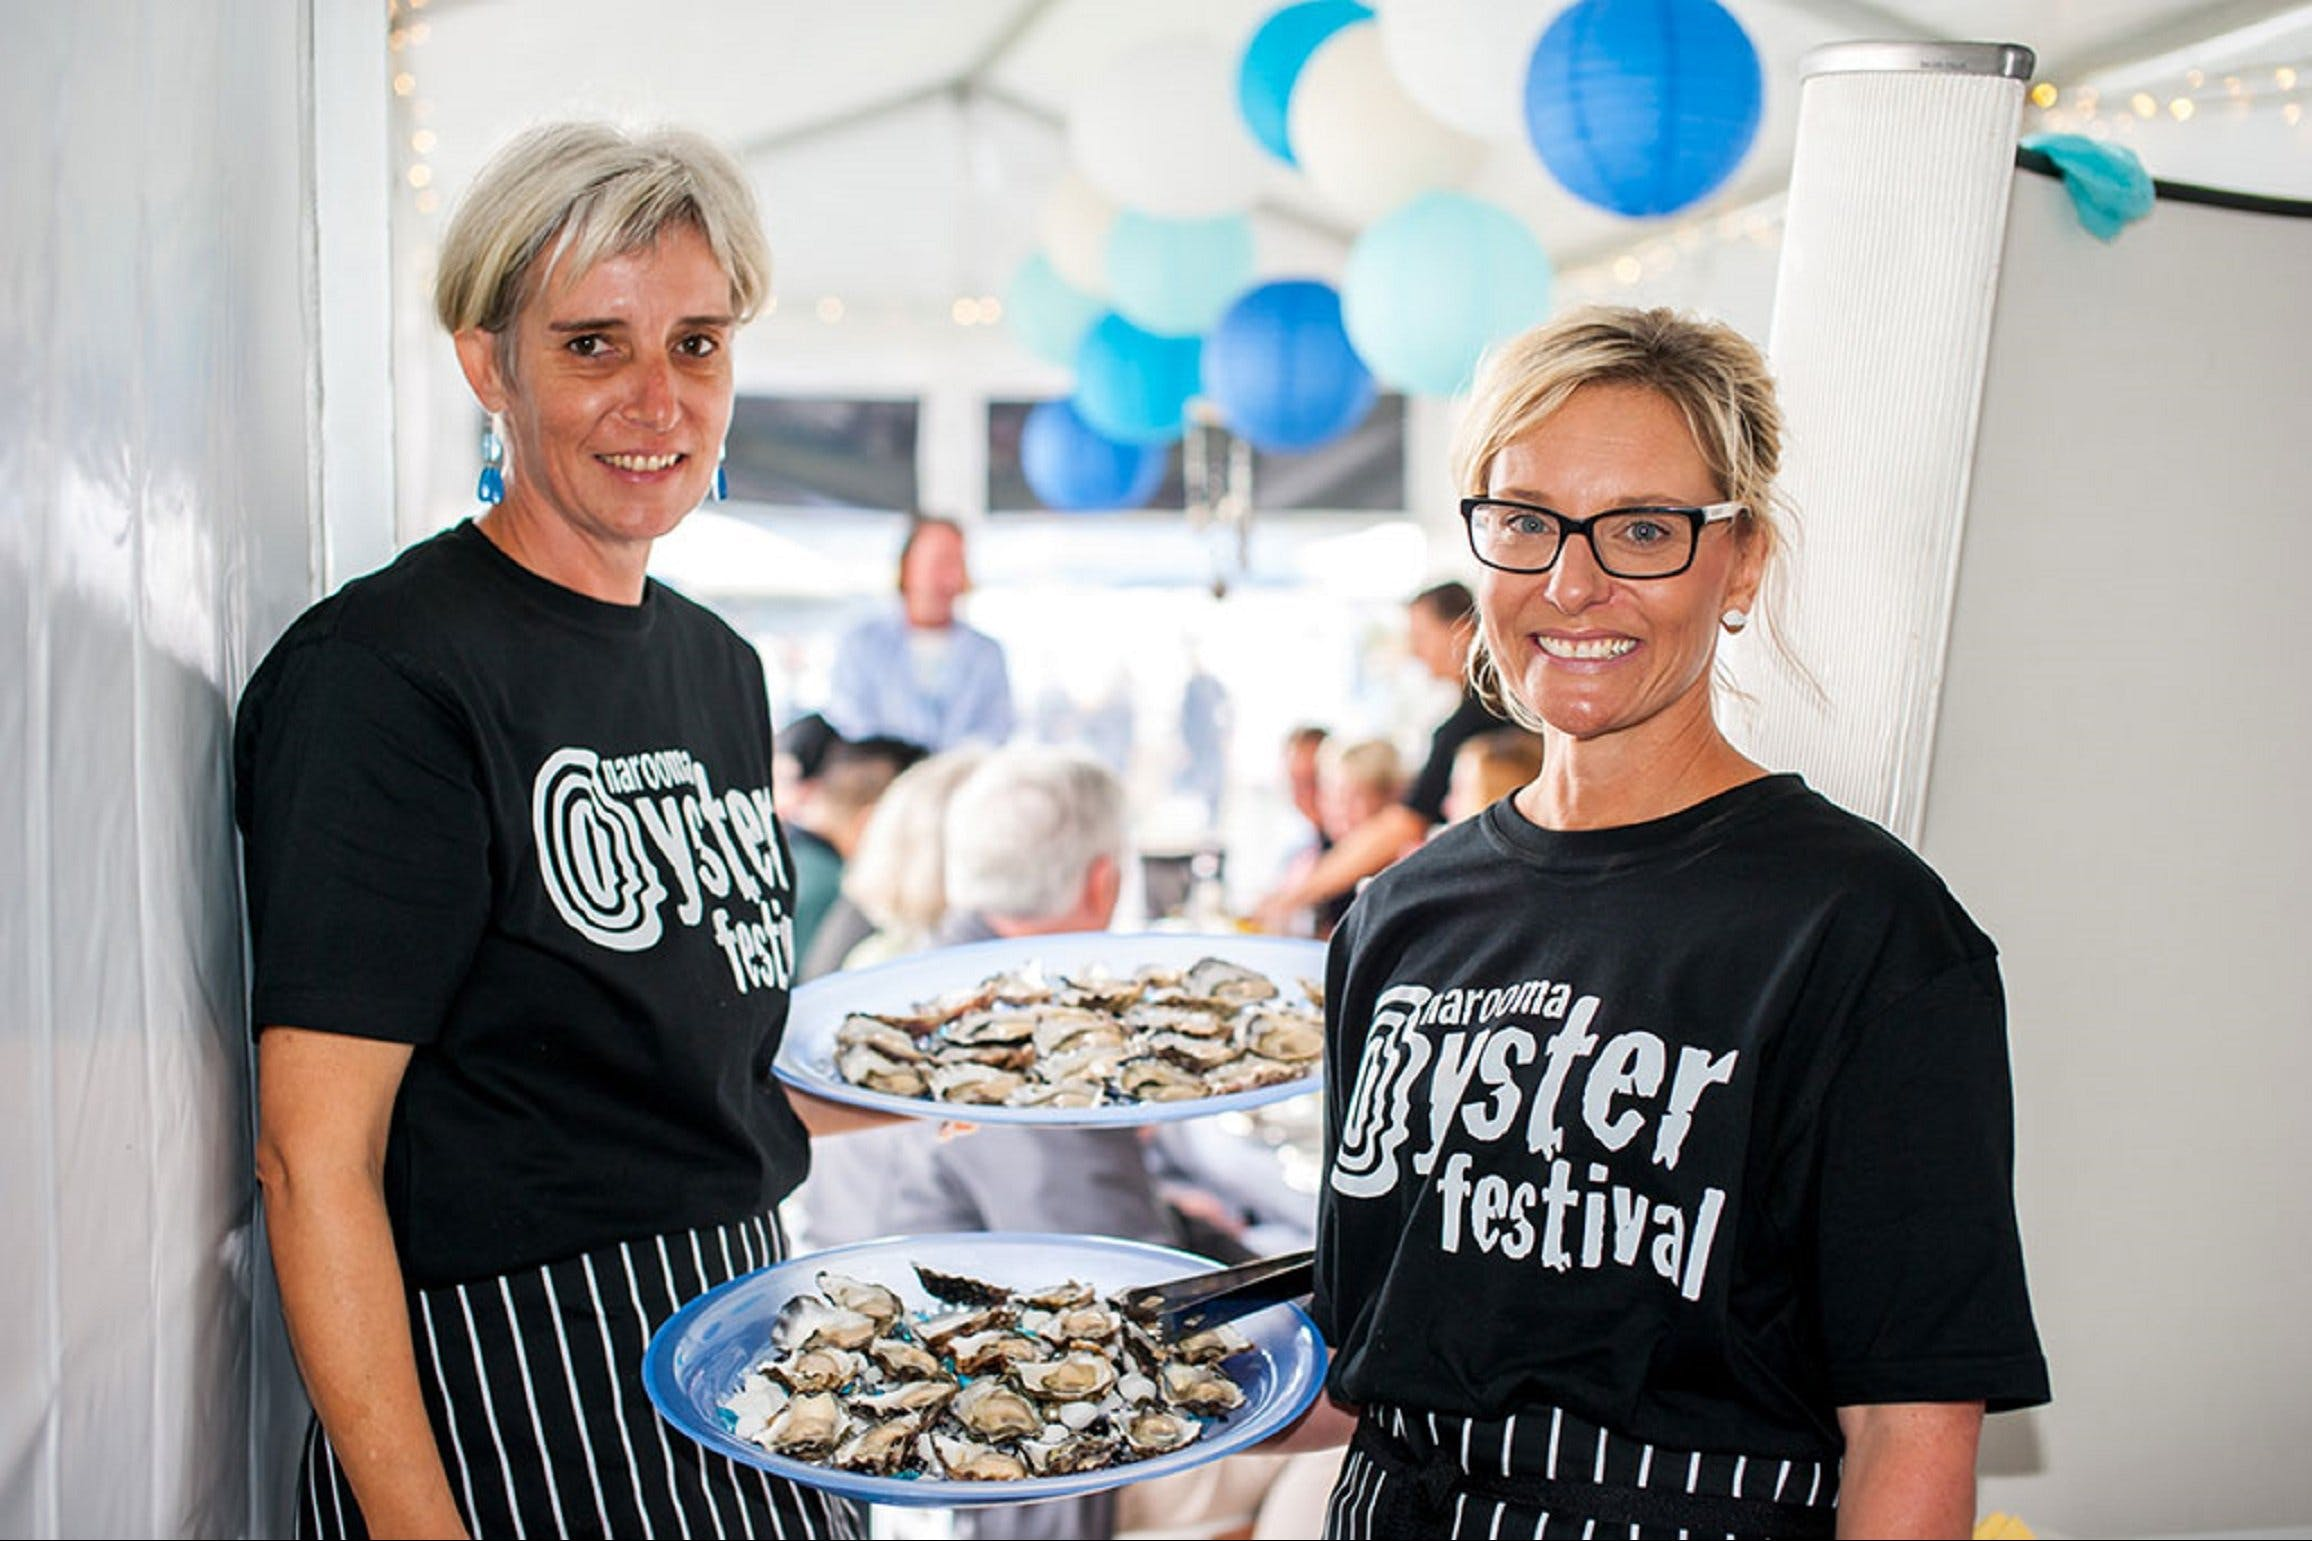 Narooma Oyster Festival - ACT Tourism